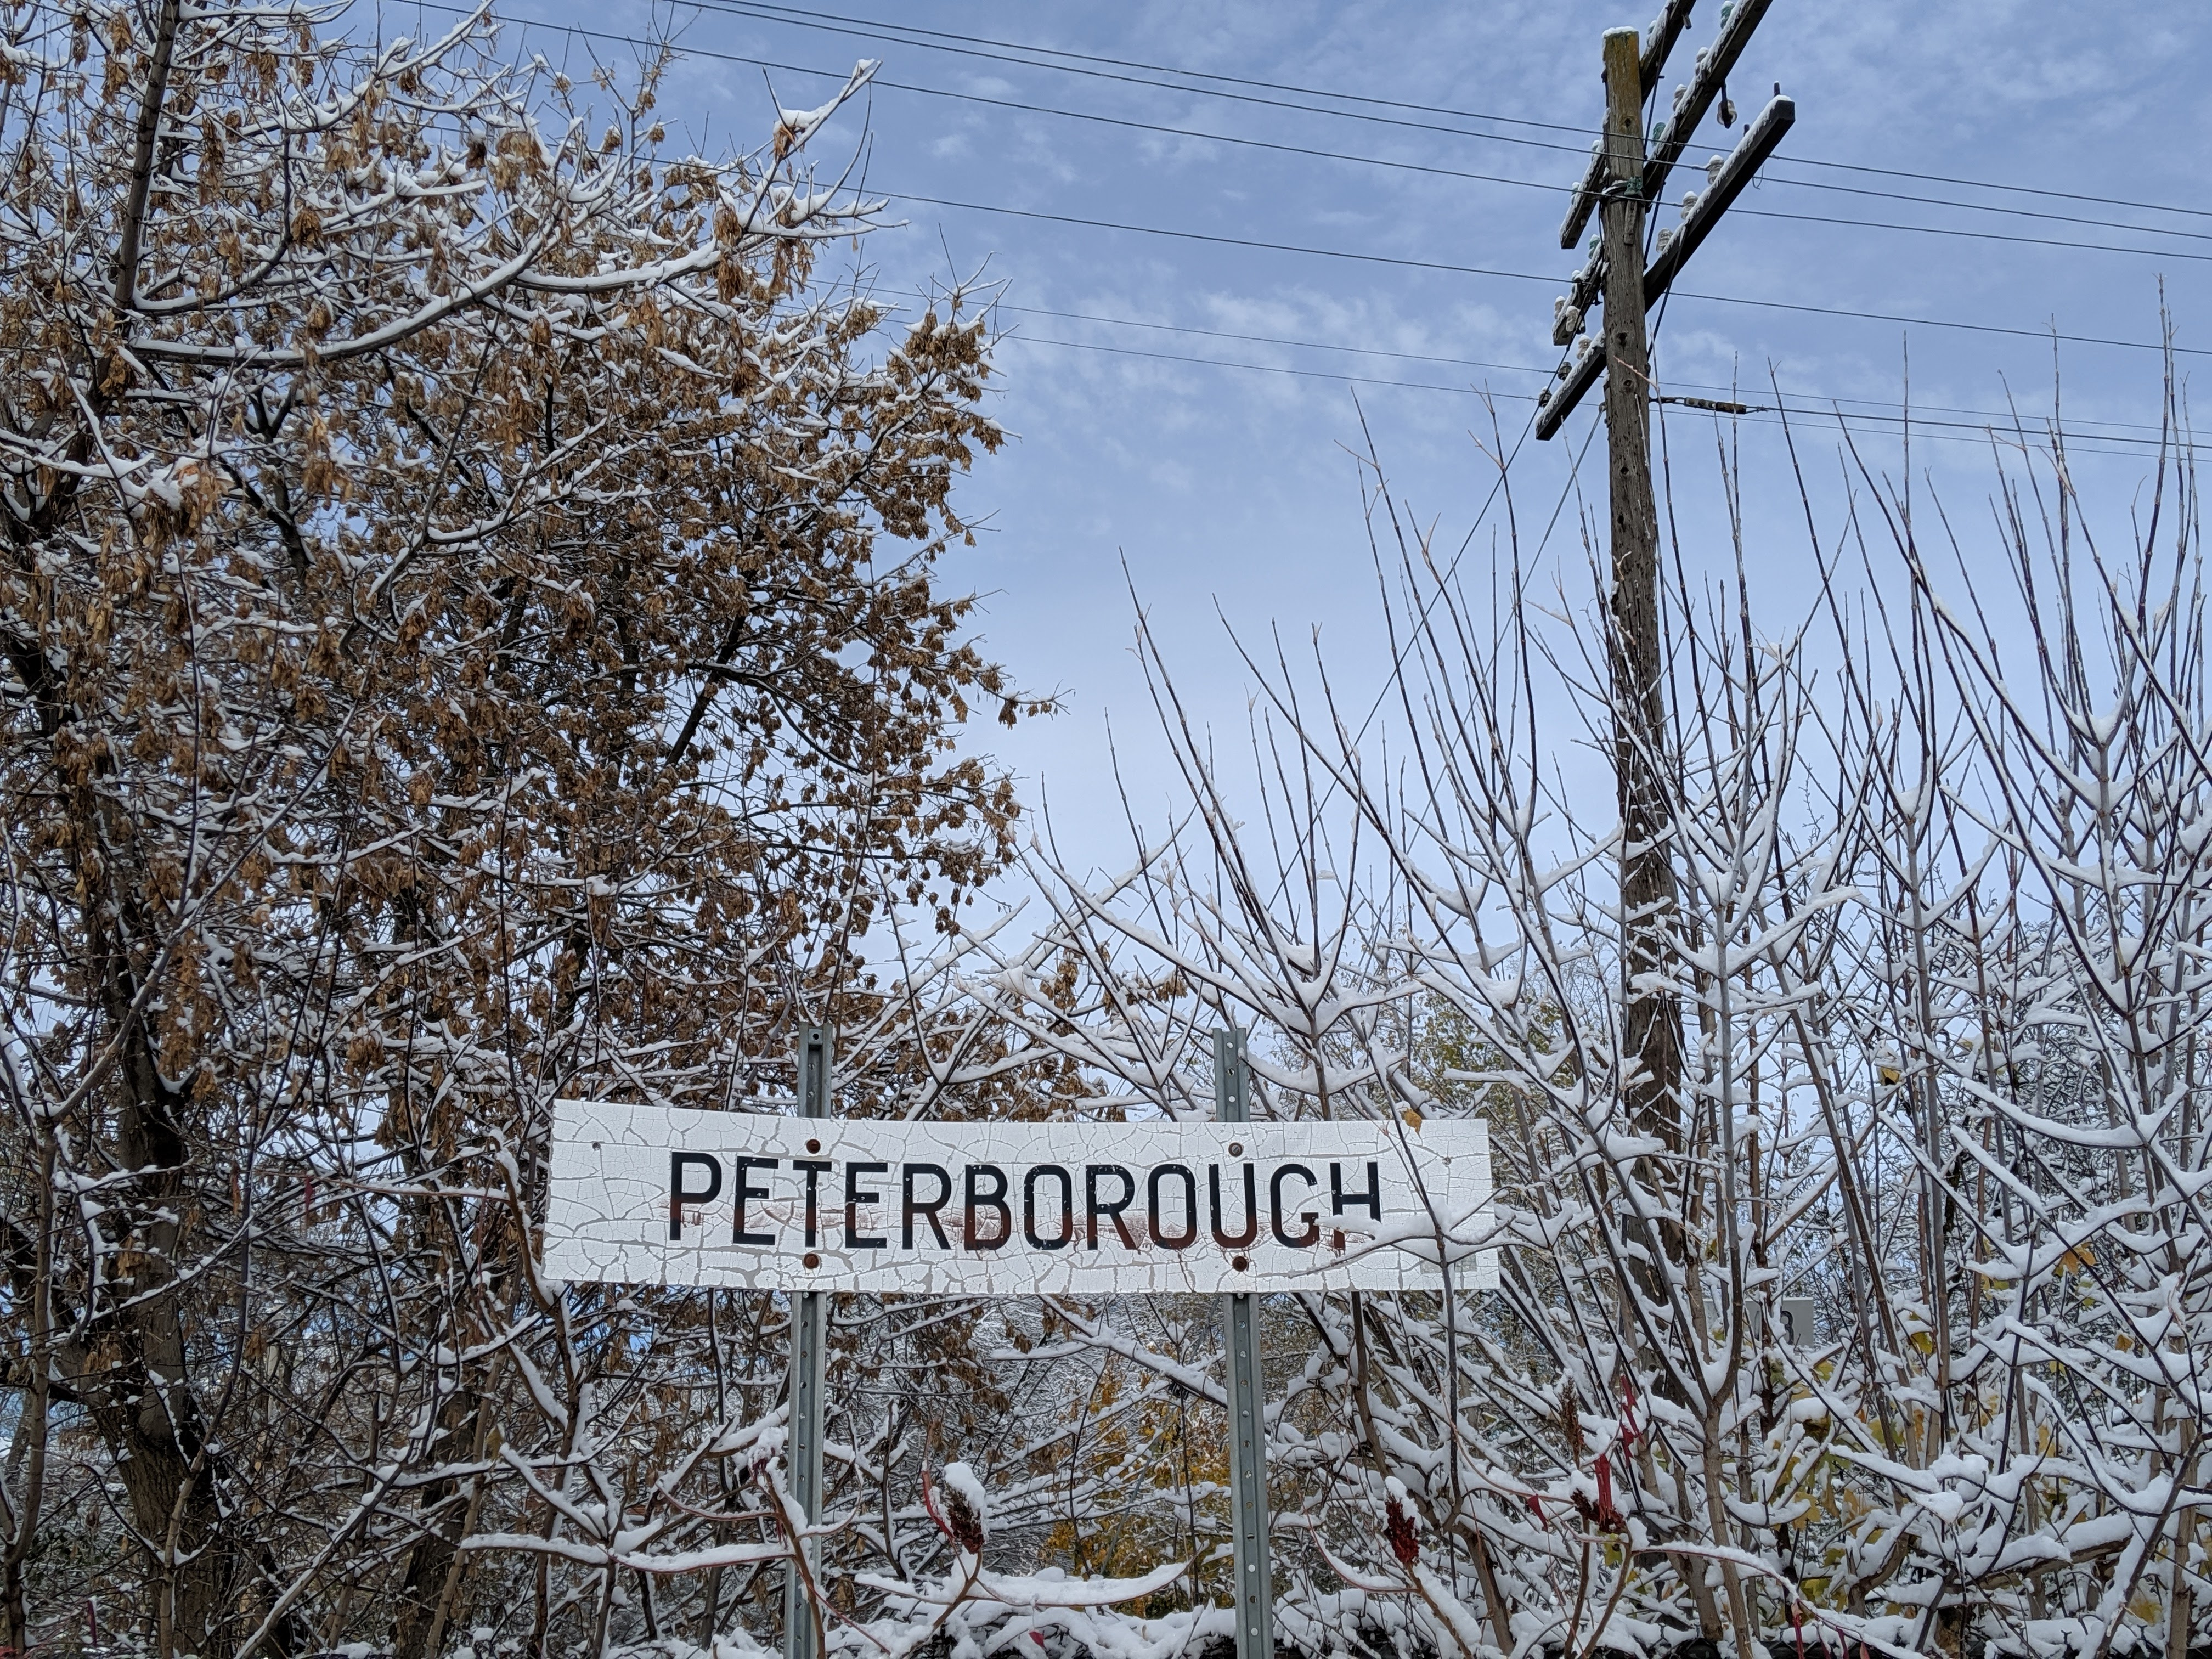 Peterborough city sign covered in snow